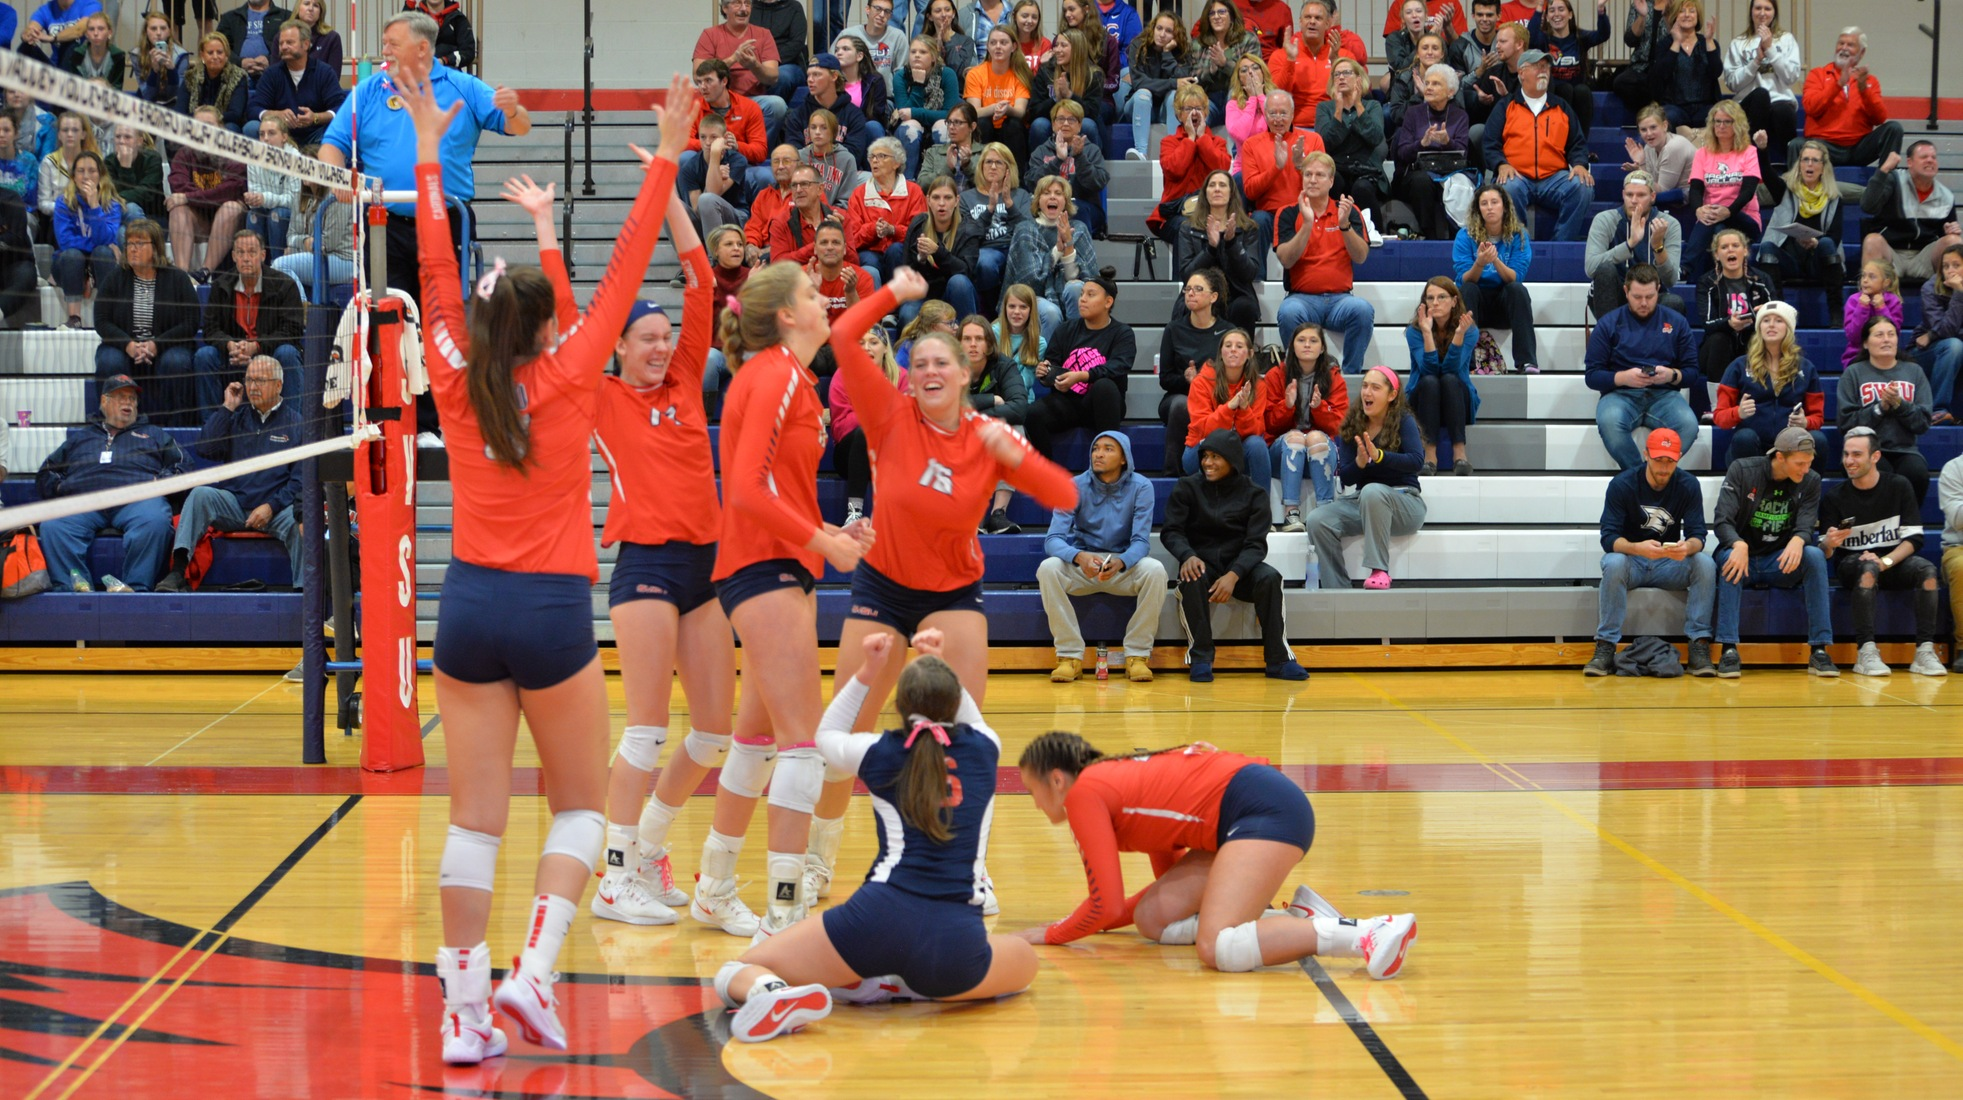 SVSU Volleyball Rolls to 3-0 Victory Over Grand Valley